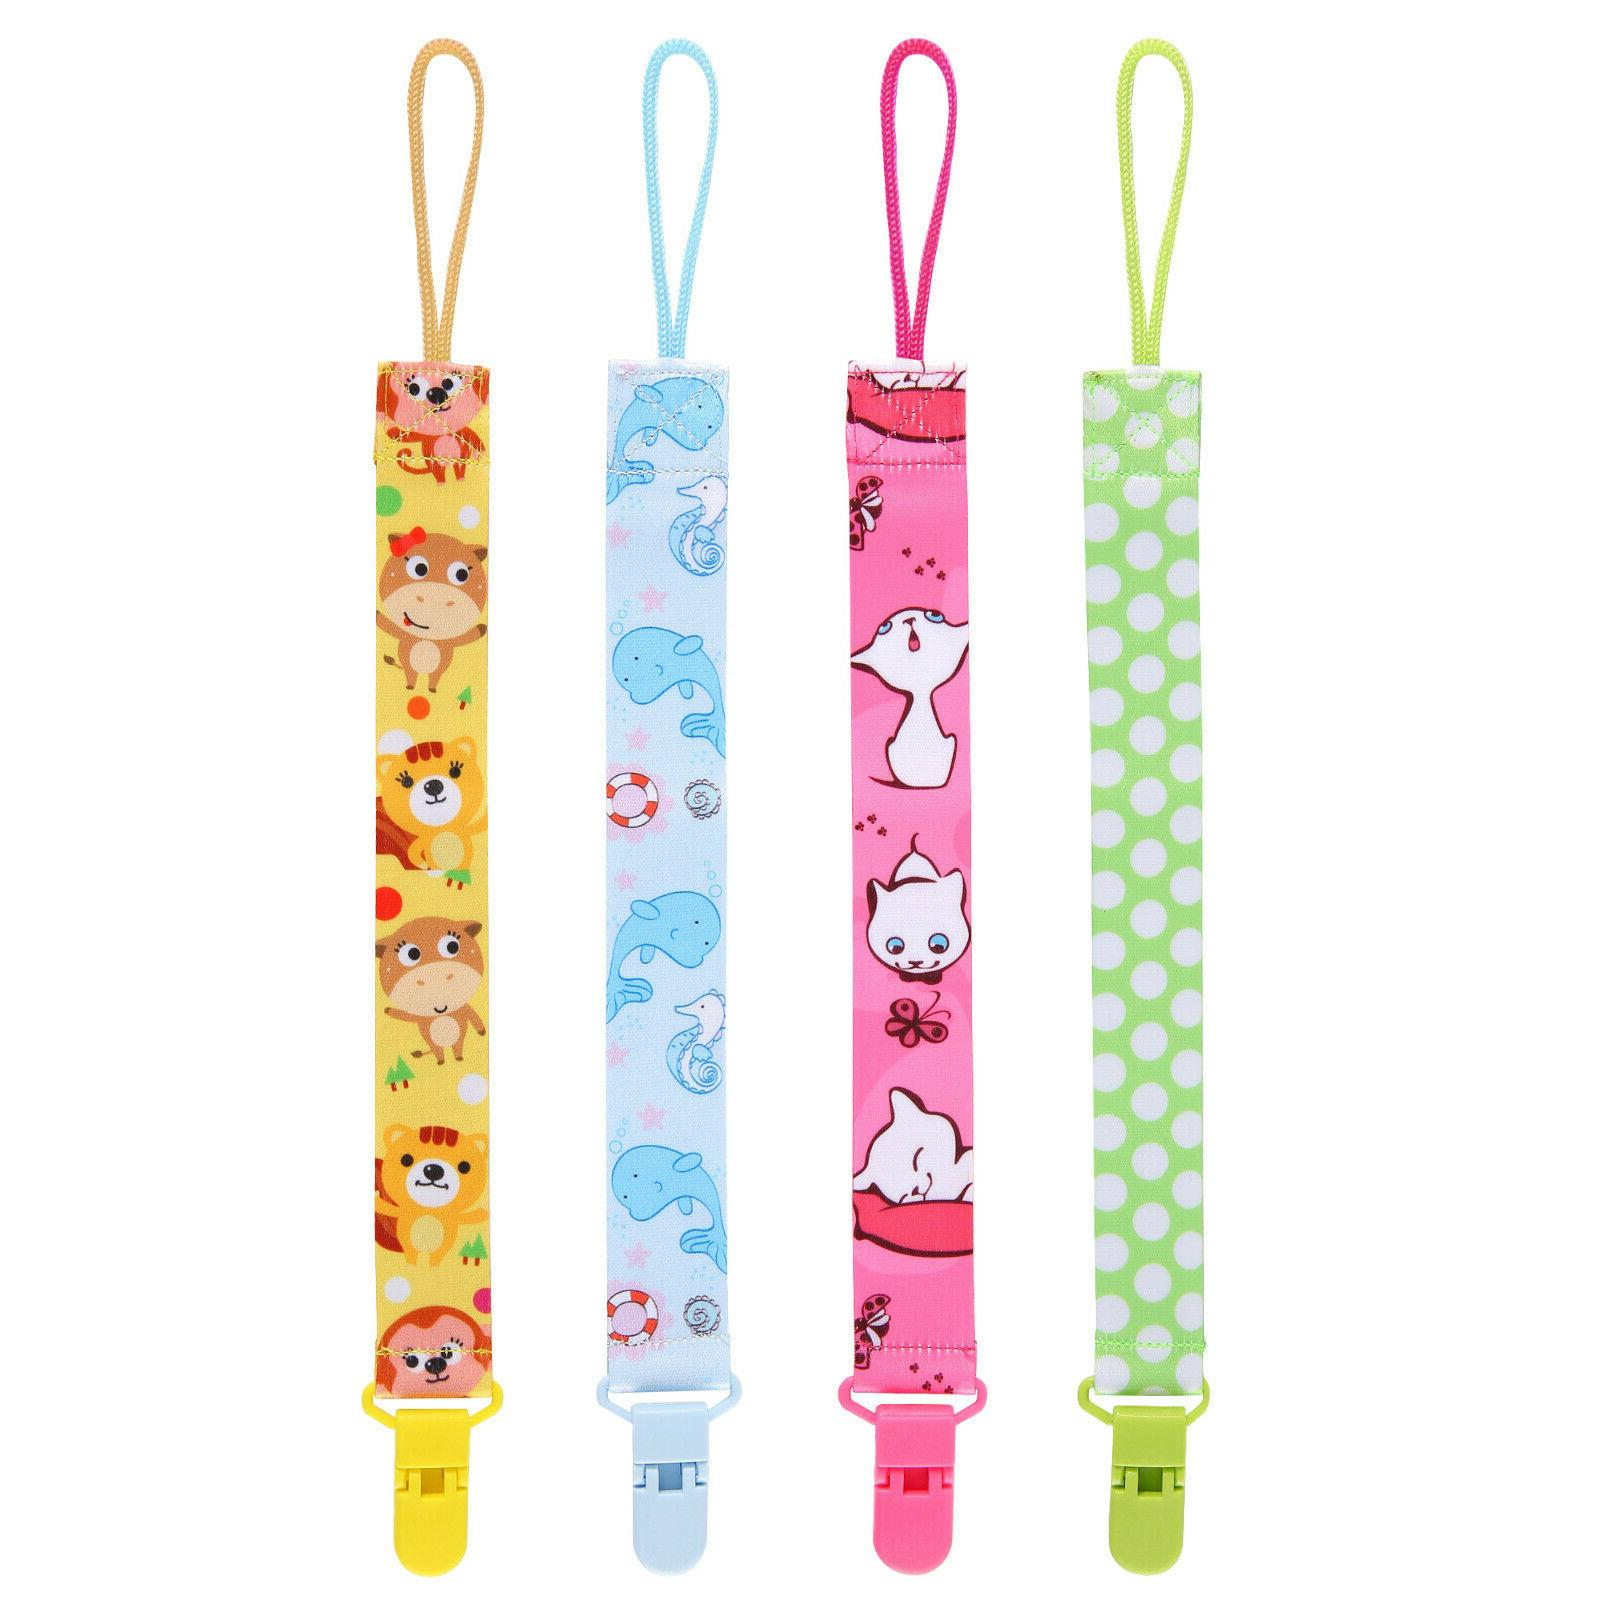 Pacifier Pacifier Clips 4 Pacifier Holder for Boys Girls